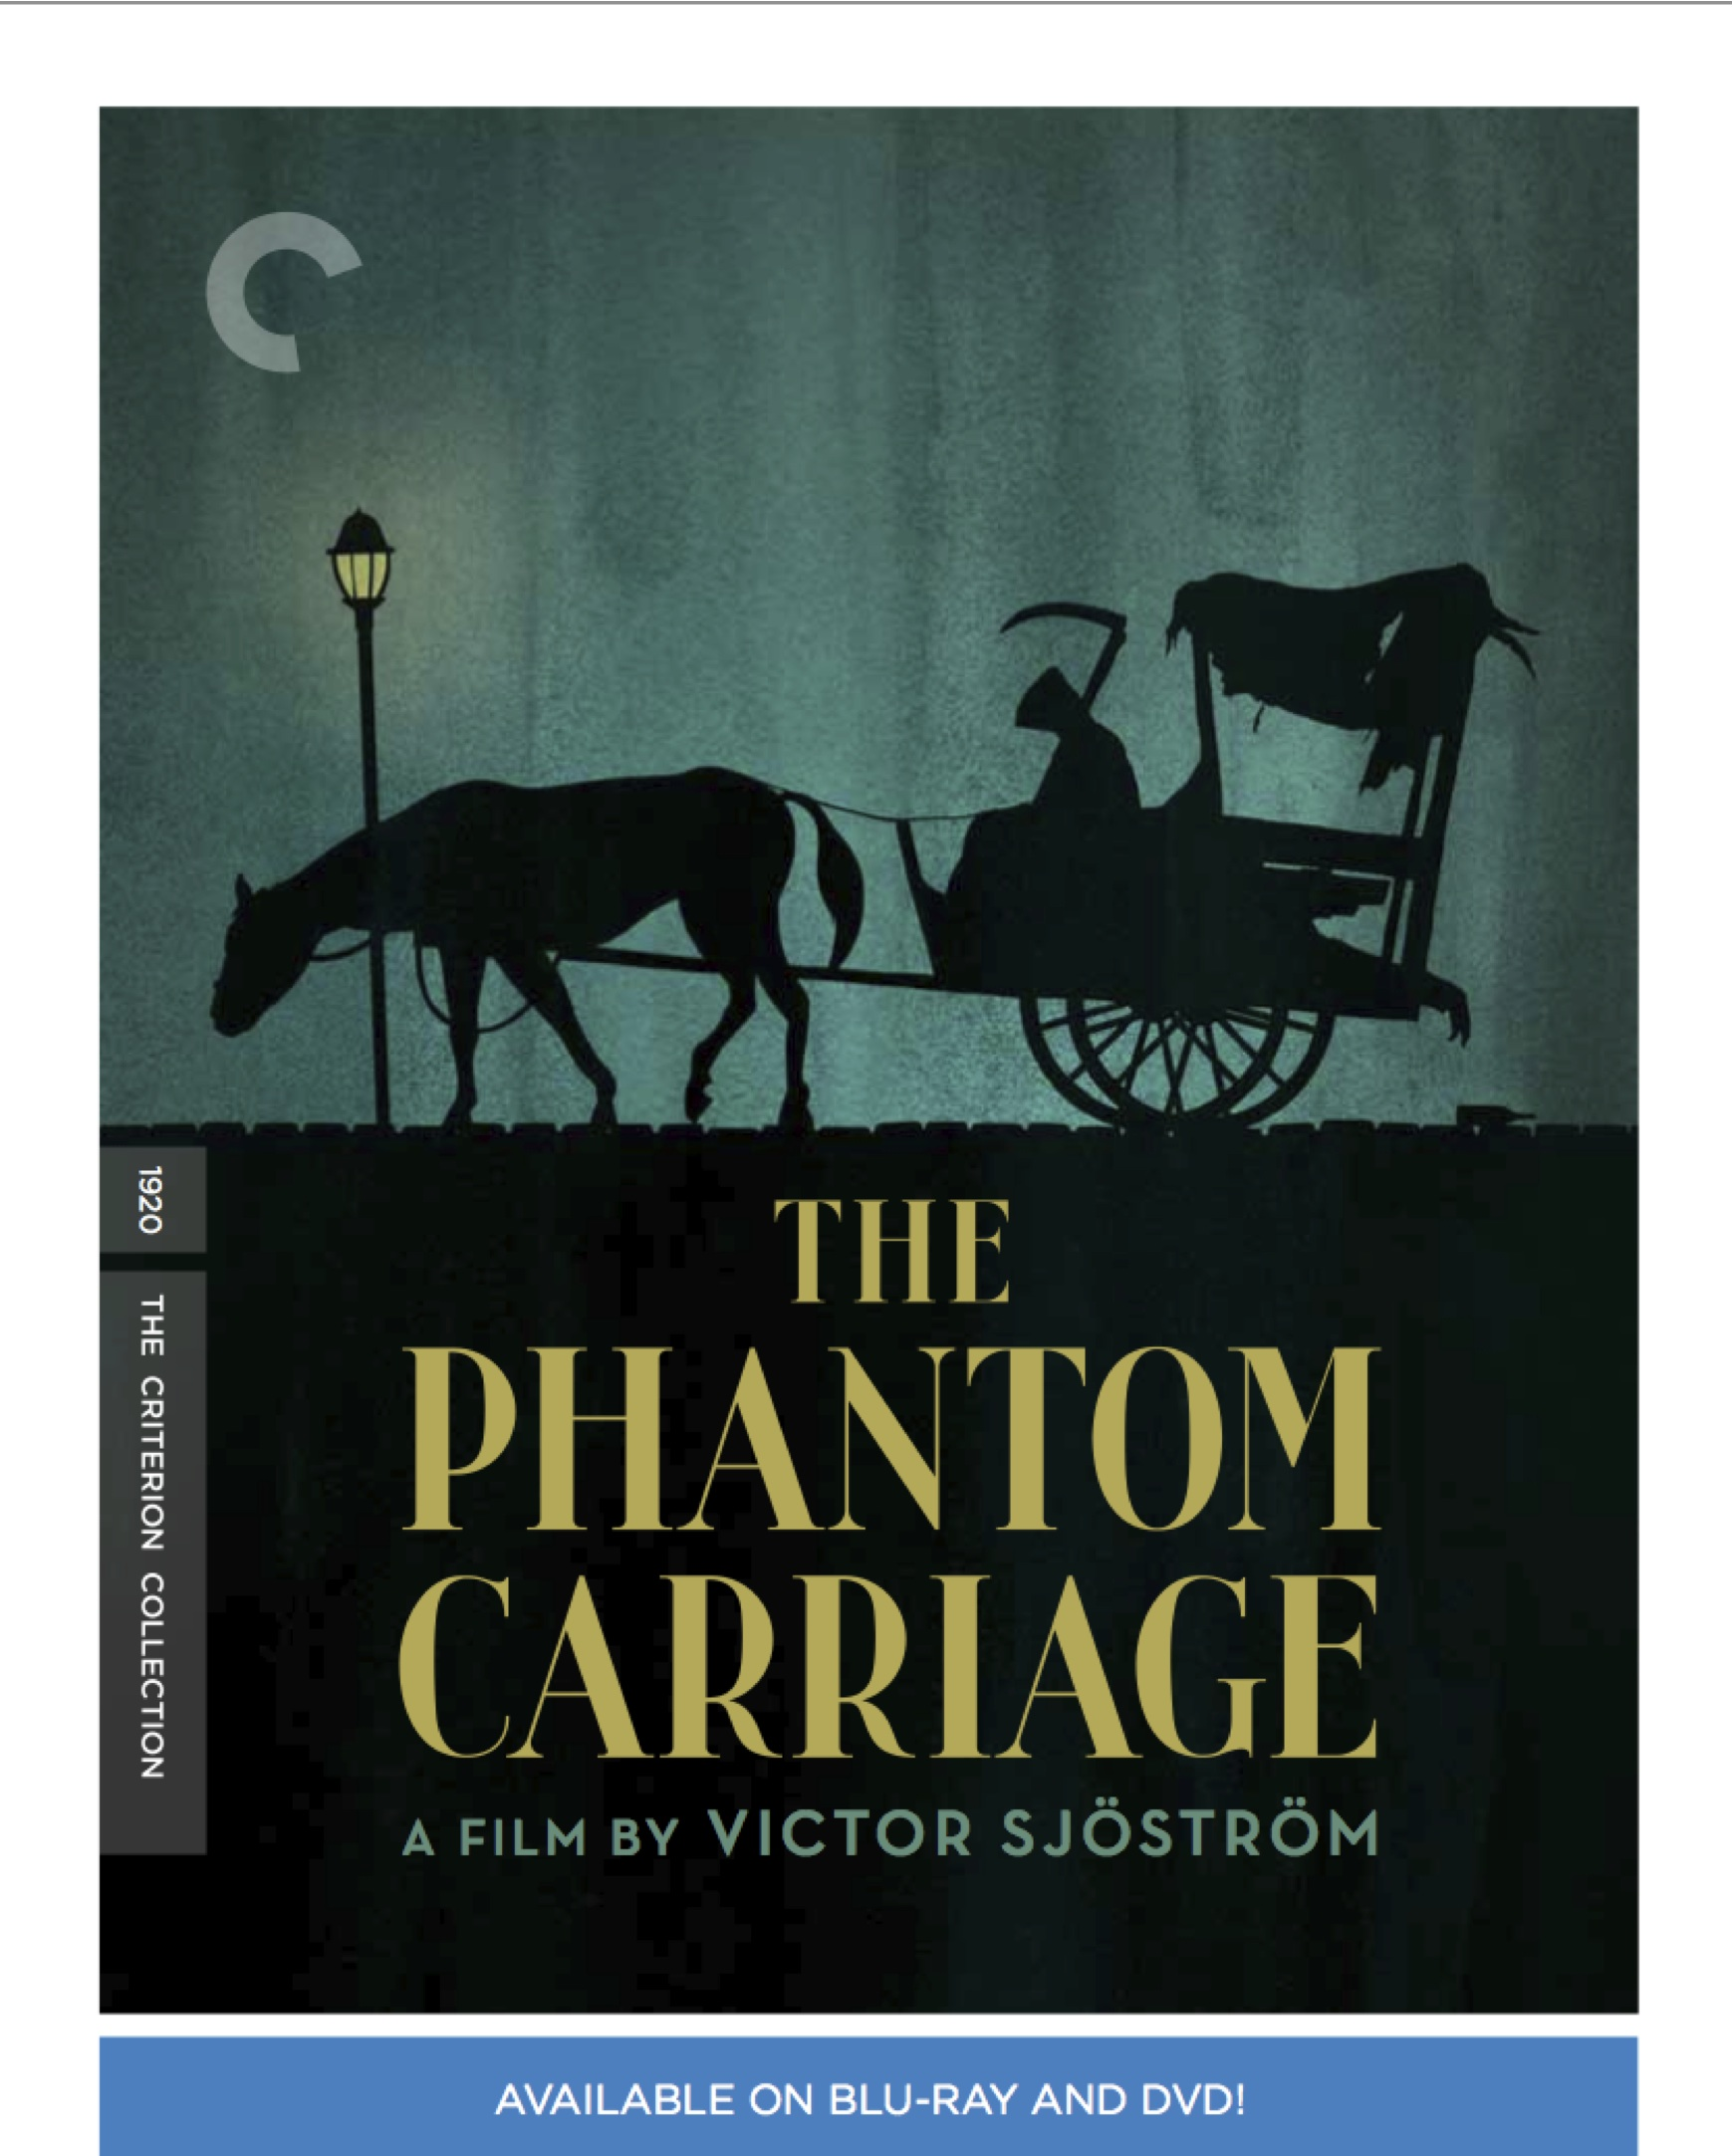 The Phantom Carriage movie